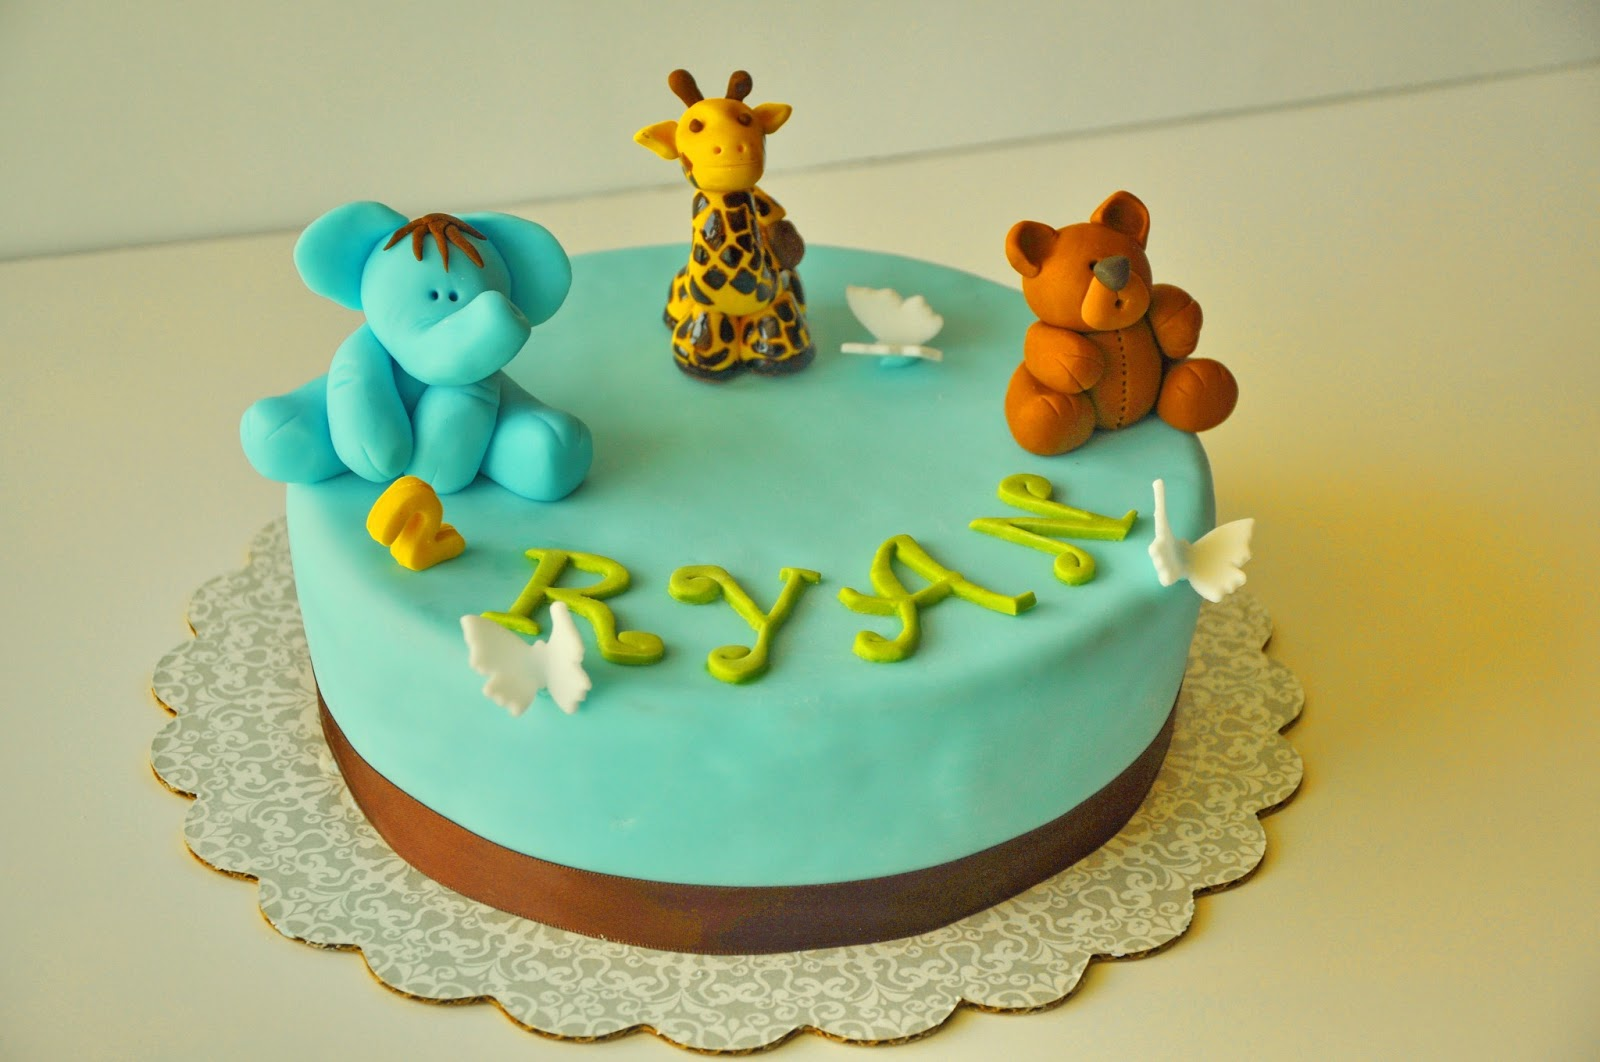 Birthday Cake Ideas For 2 Year Old Boy The Cake Boutique